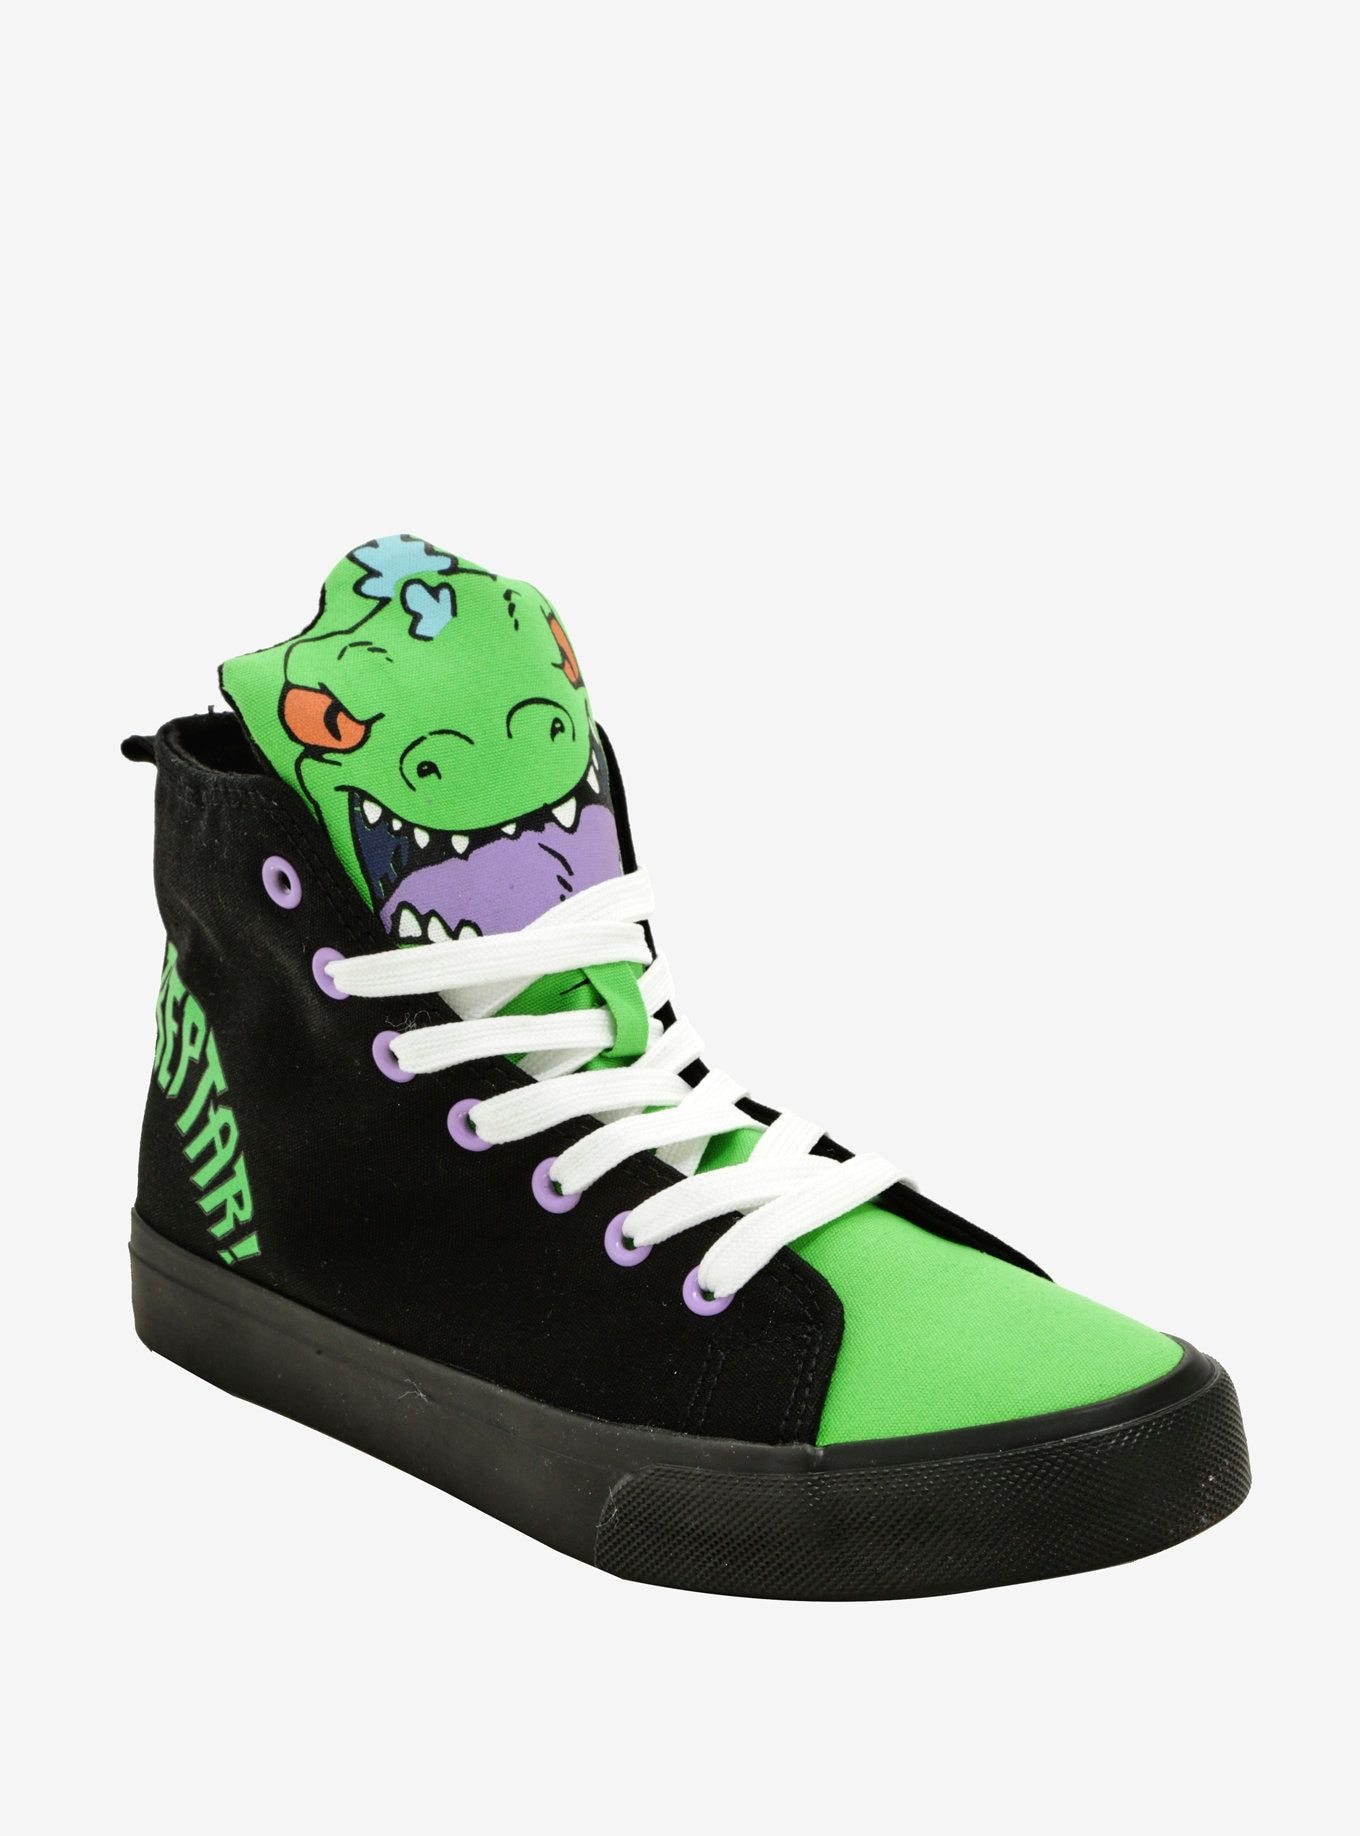 ccb0a947 Rugrats Reptar Hi-Top Sneakers | Pin of the Day | Sneakers, Green ...